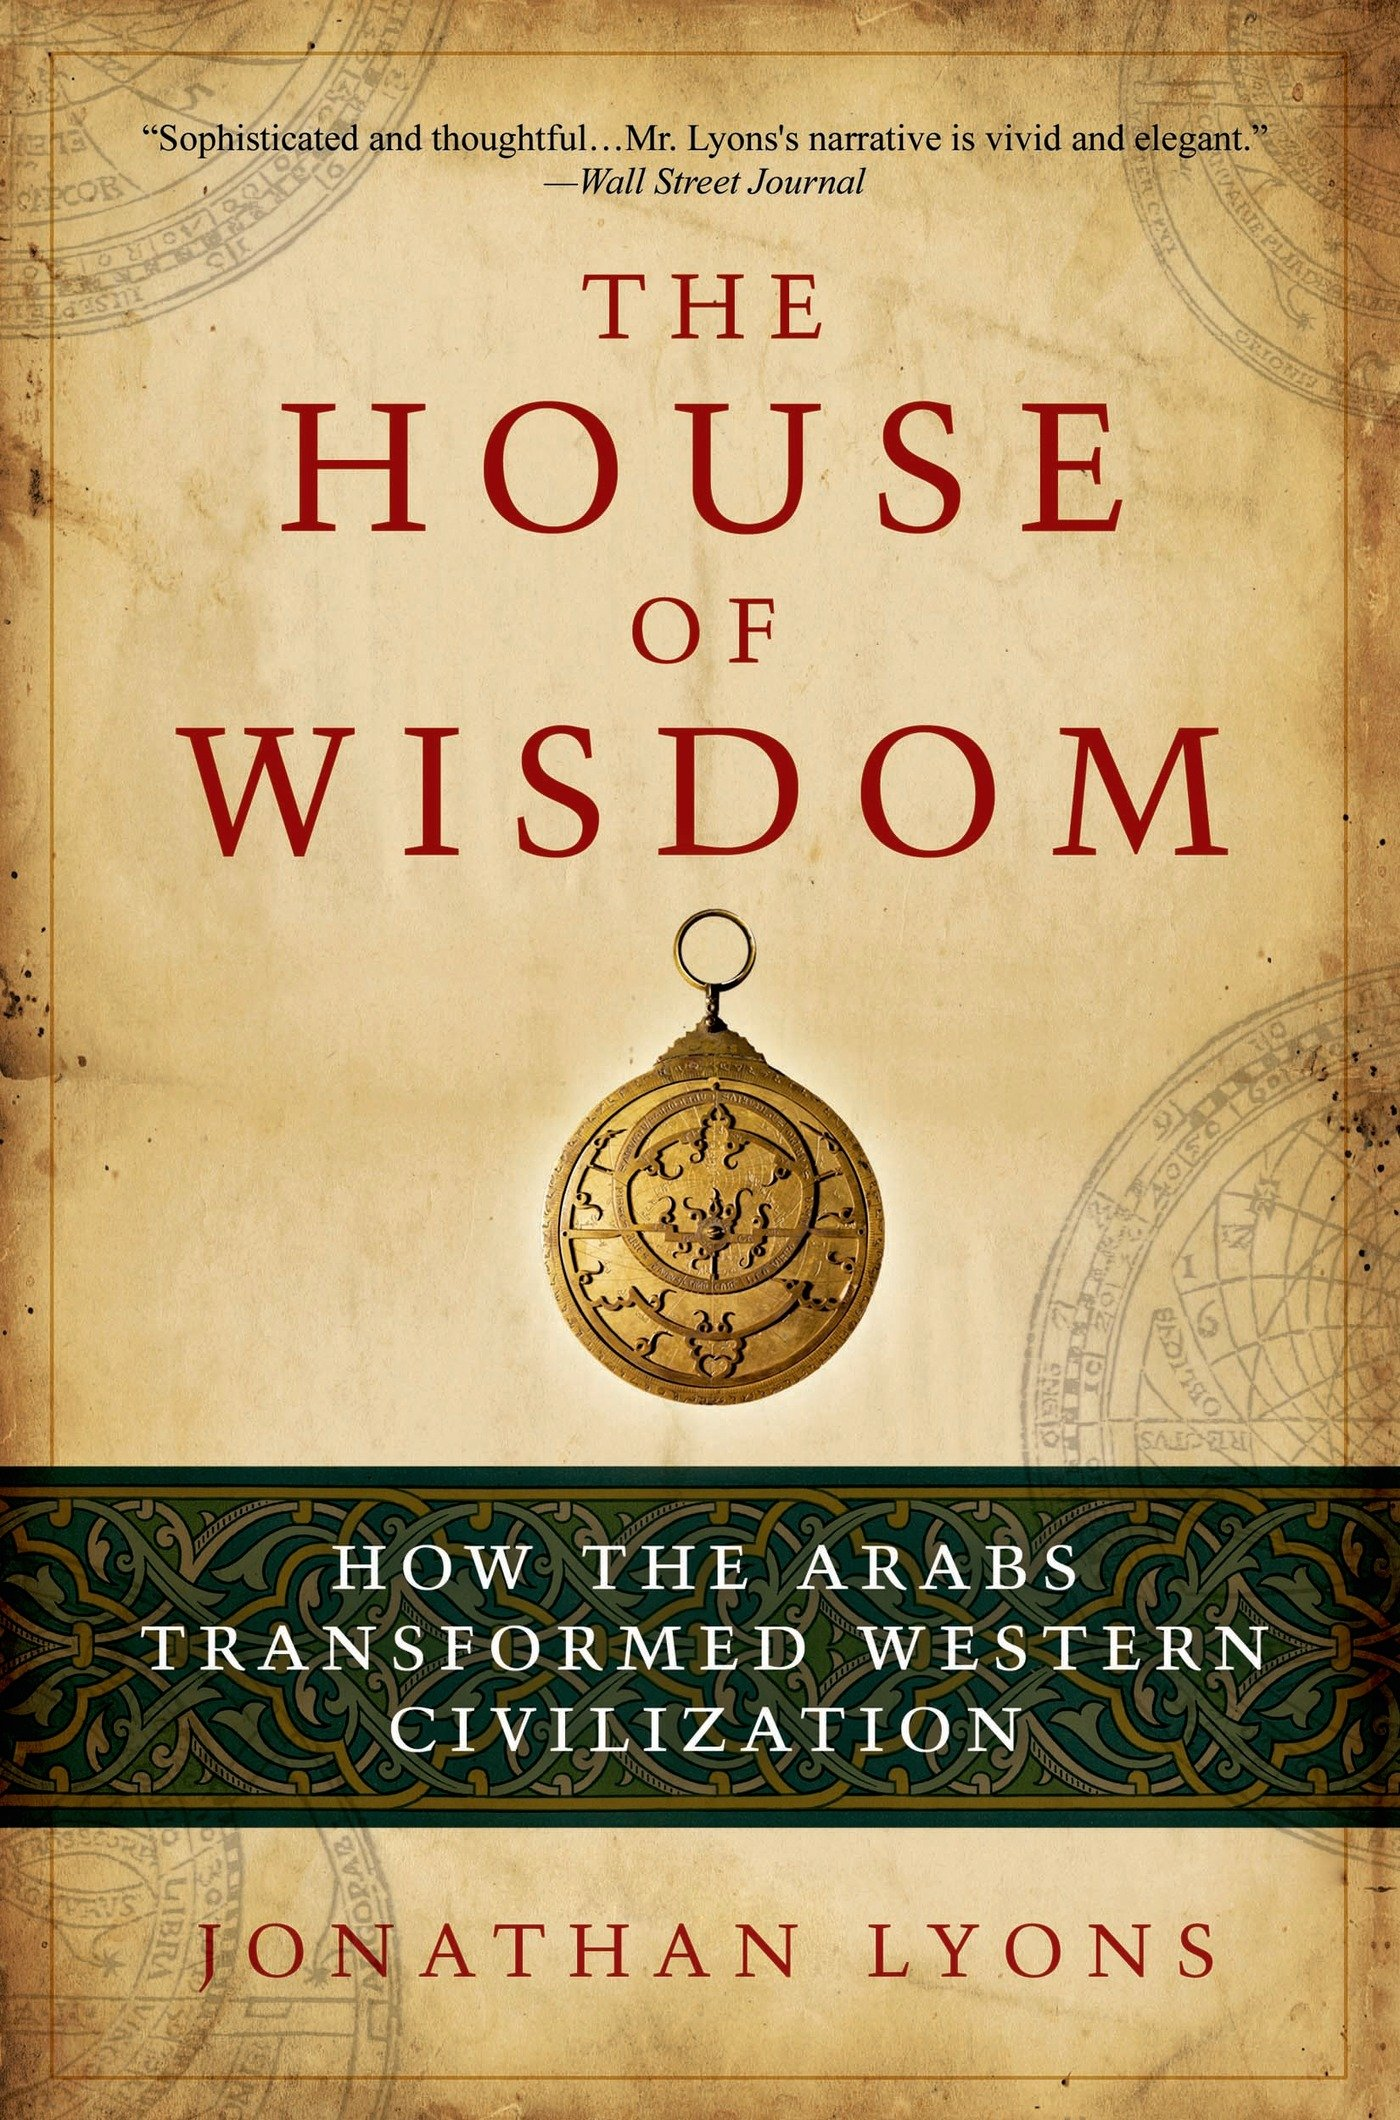 The House of Wisdom: Baghdad's Intellectual Powerhouse | 1001 Inventions